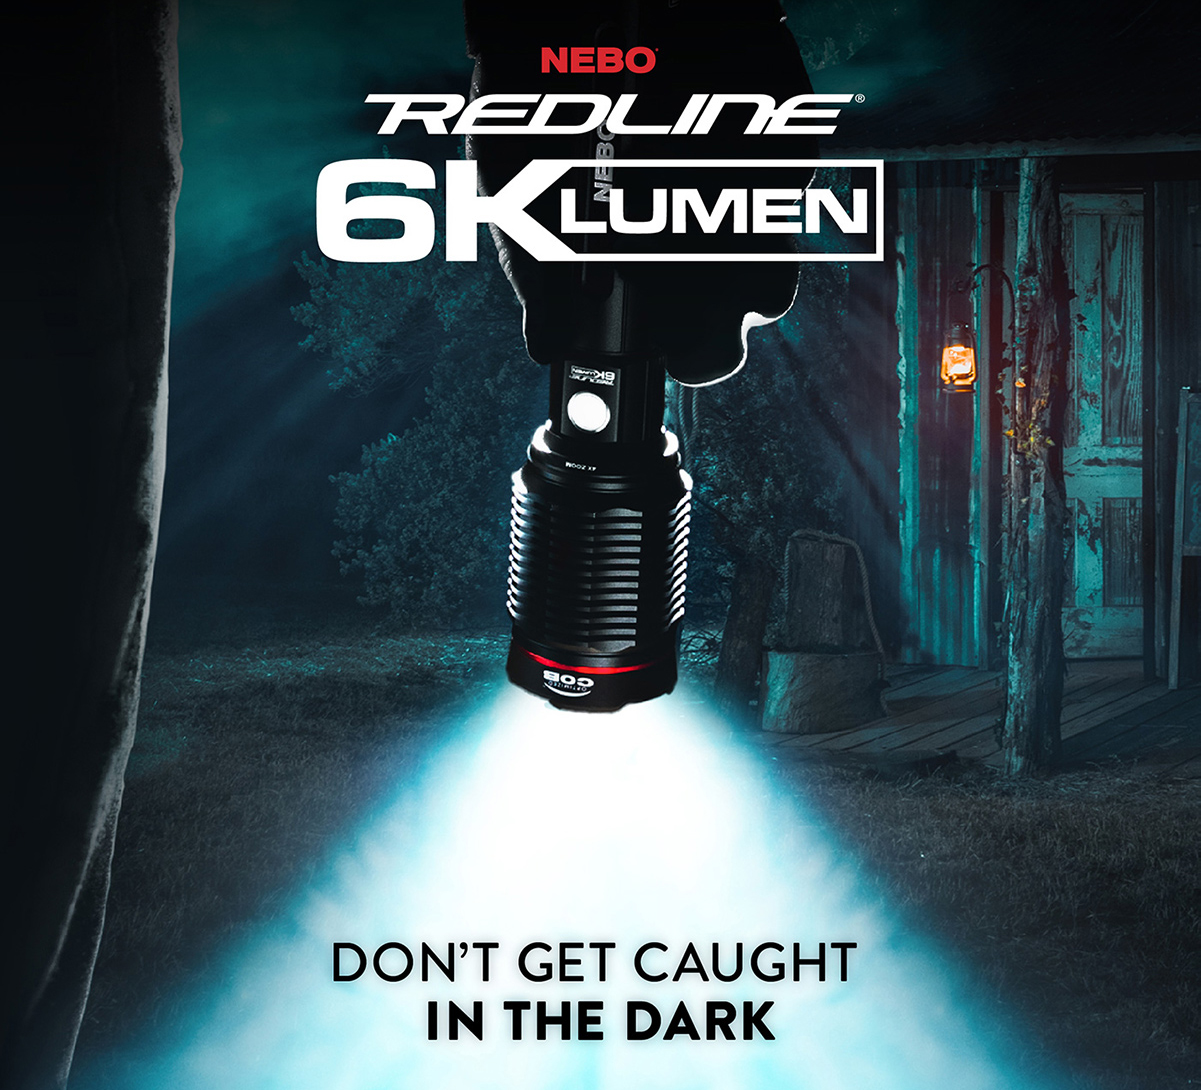 At 6,000 lumens, the REDLINE 6K is our brightest flashlight ever!